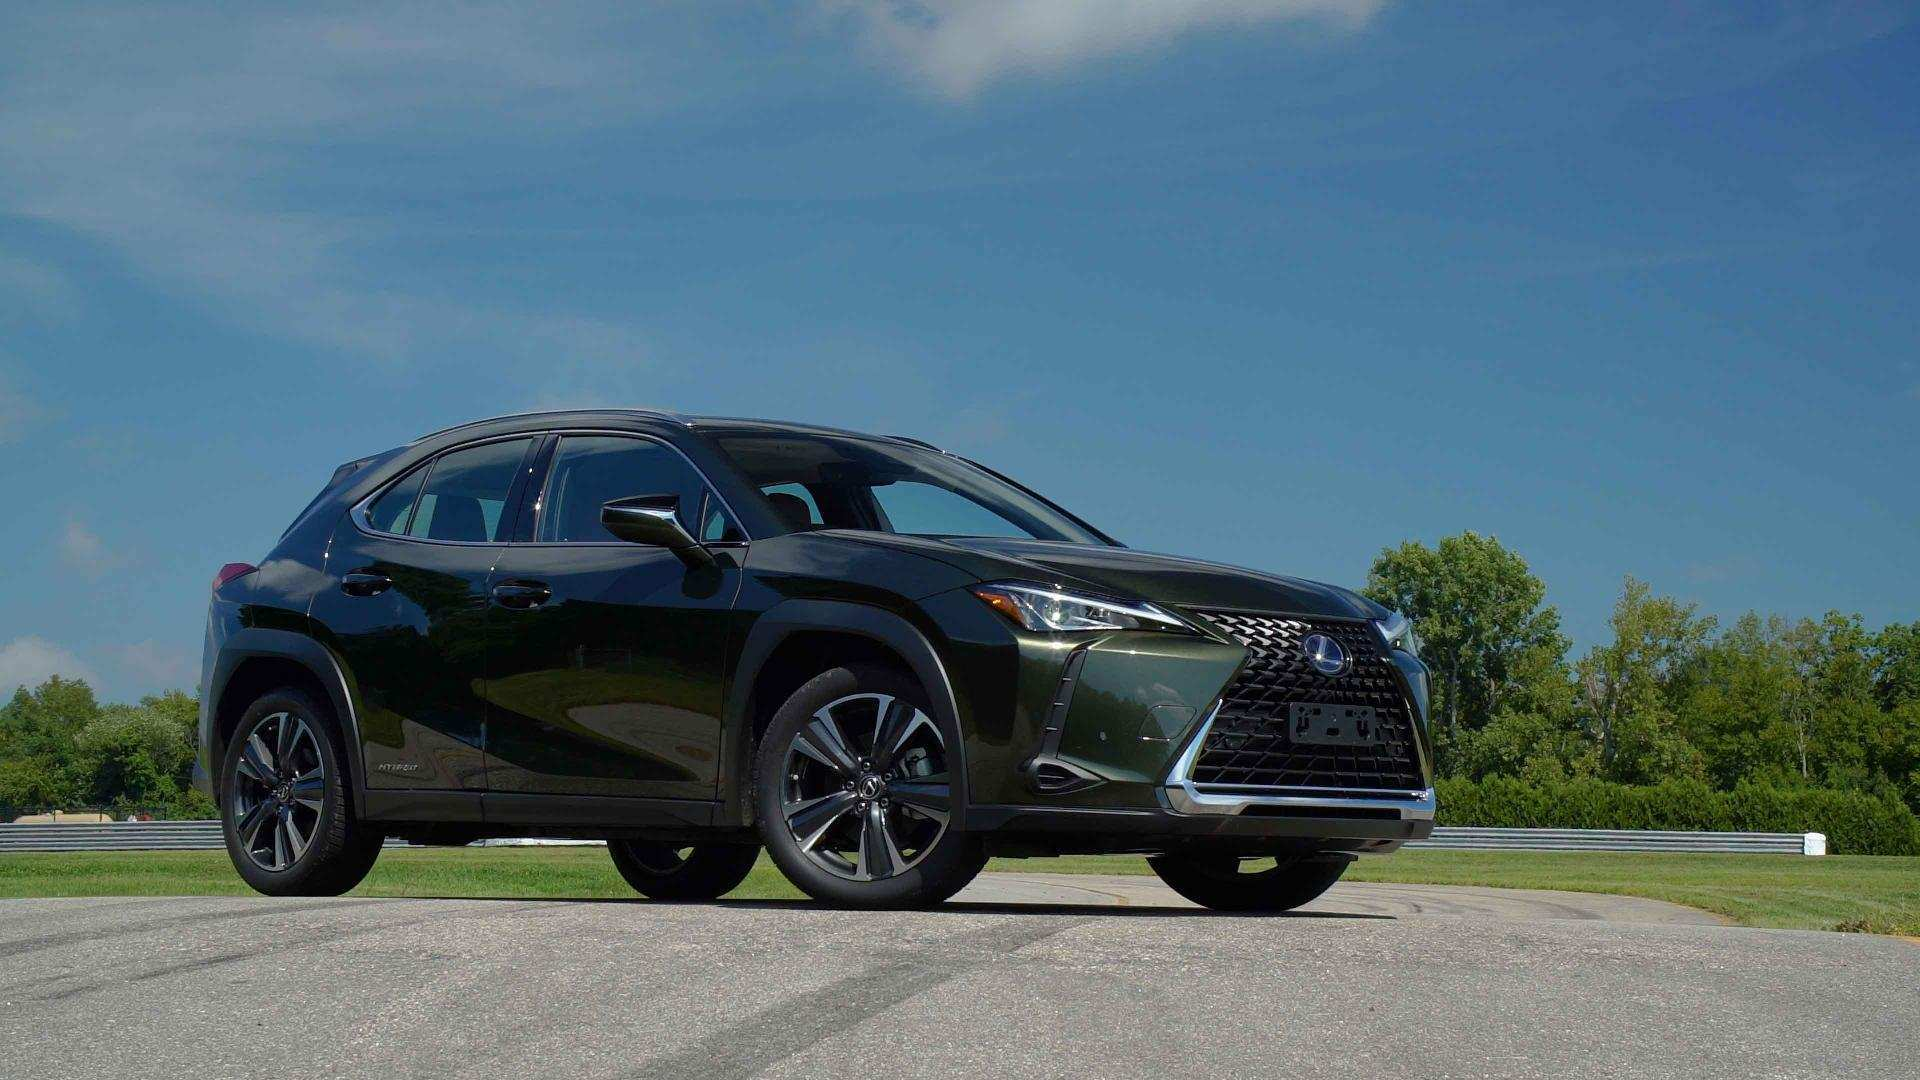 64 New 2019 Lexus Hatchback Overview for 2019 Lexus Hatchback